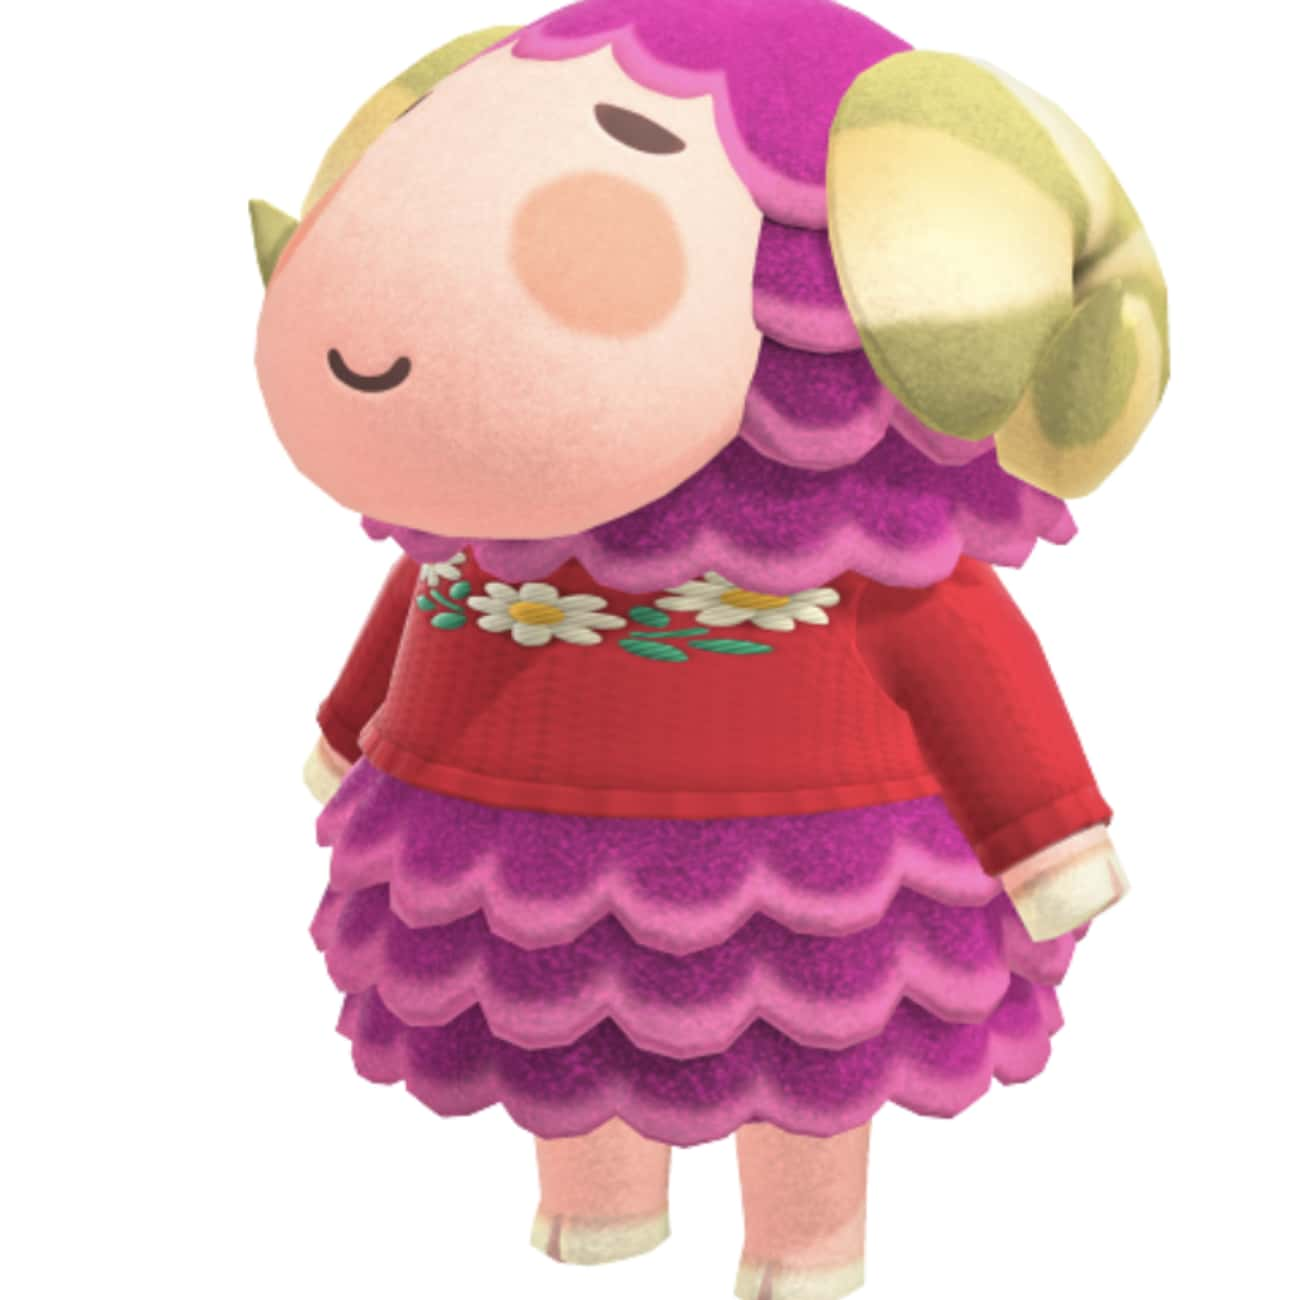 Stella is listed (or ranked) 1 on the list Who's Your Favorite Sheep Villager In 'Animal Crossing: New Horizons'?